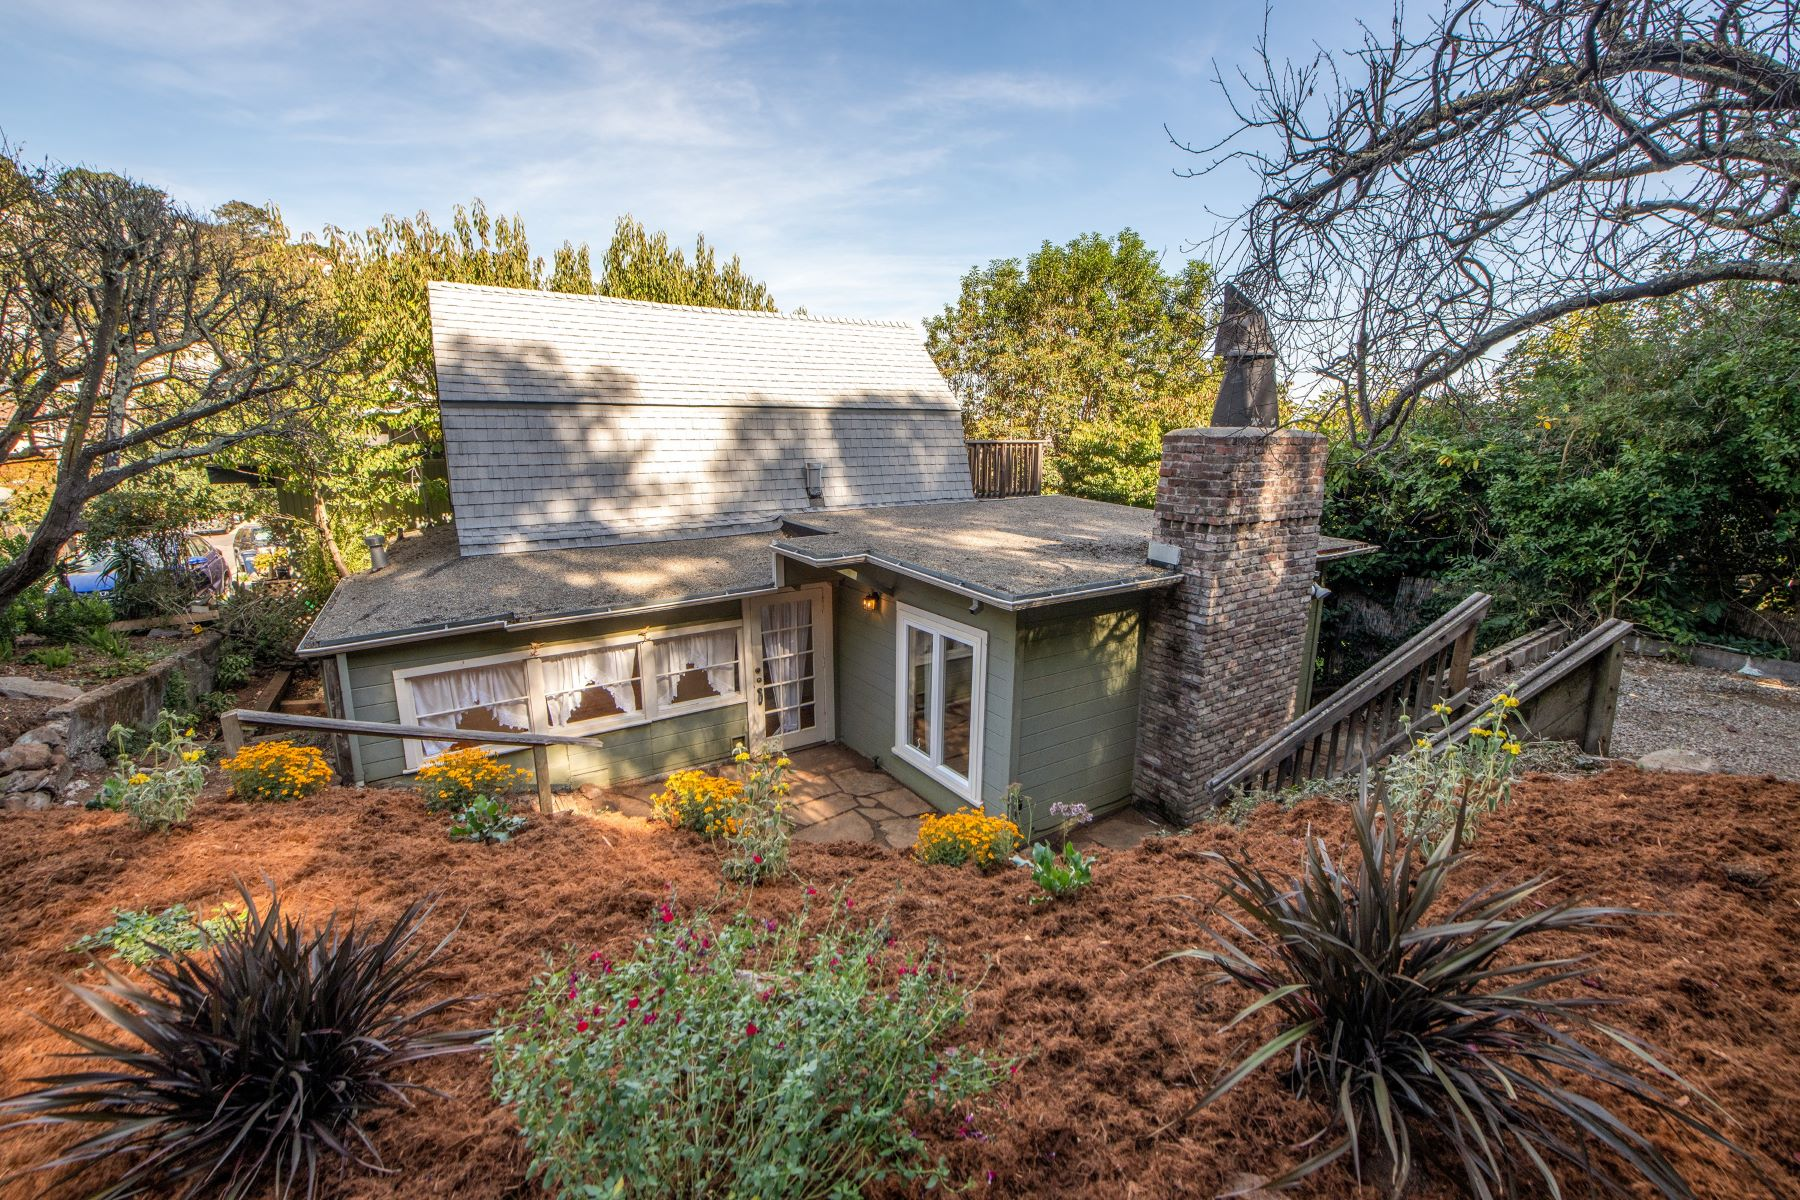 Single Family Homes for Sale at Charming Sausalito Cottage 106 West Street Sausalito, California 94965 United States